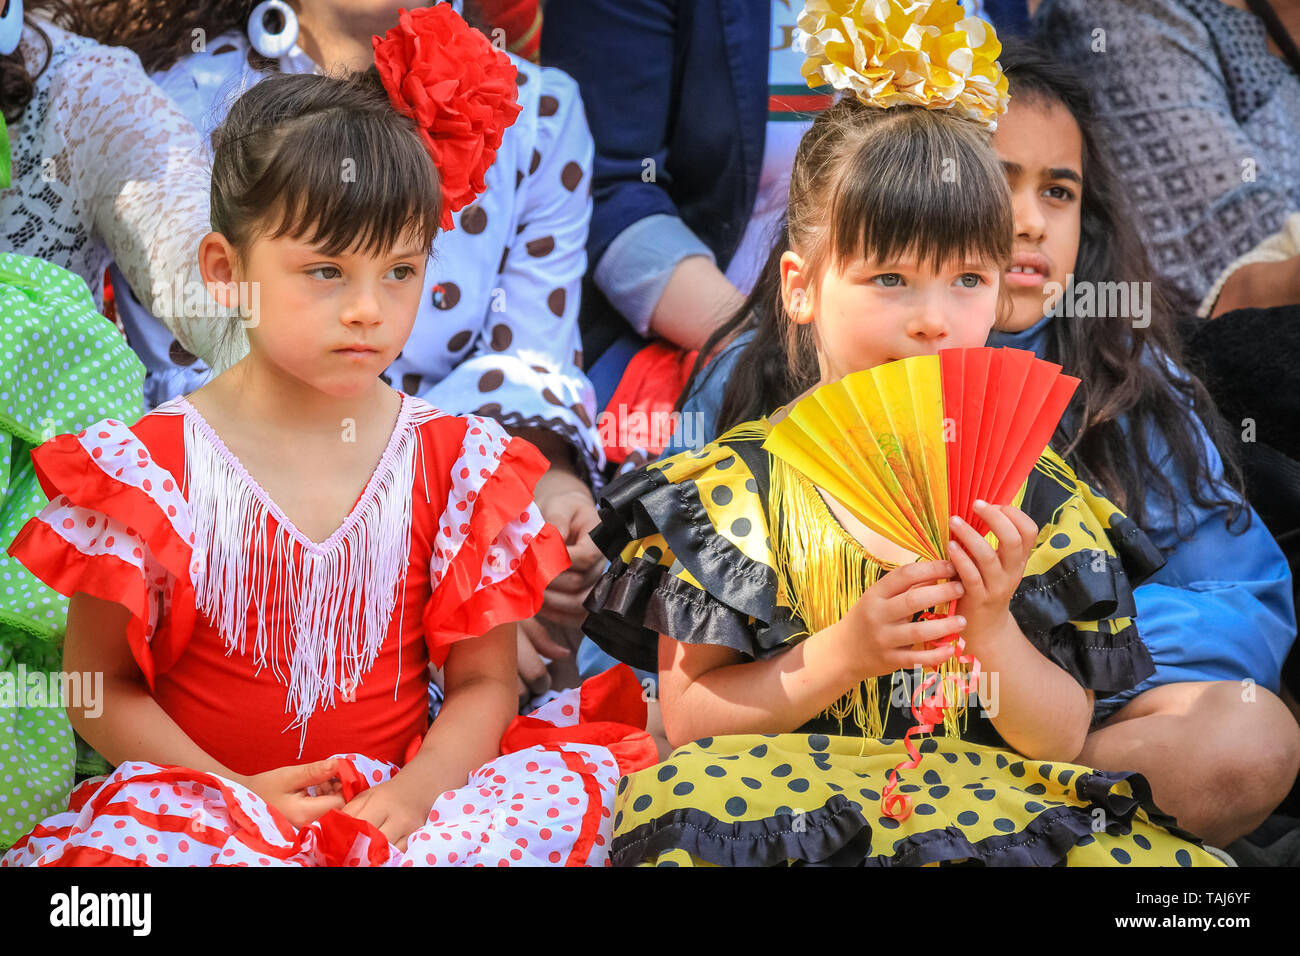 South Bank, London, UK - 25th May 2019. Children watch the performances closely. The Feria de Londres is a free festival on London's South Bank presenting Spanish culture, dance, music, wine and food from May 24-26. Credit: Imageplotter/Alamy Live News Stock Photo